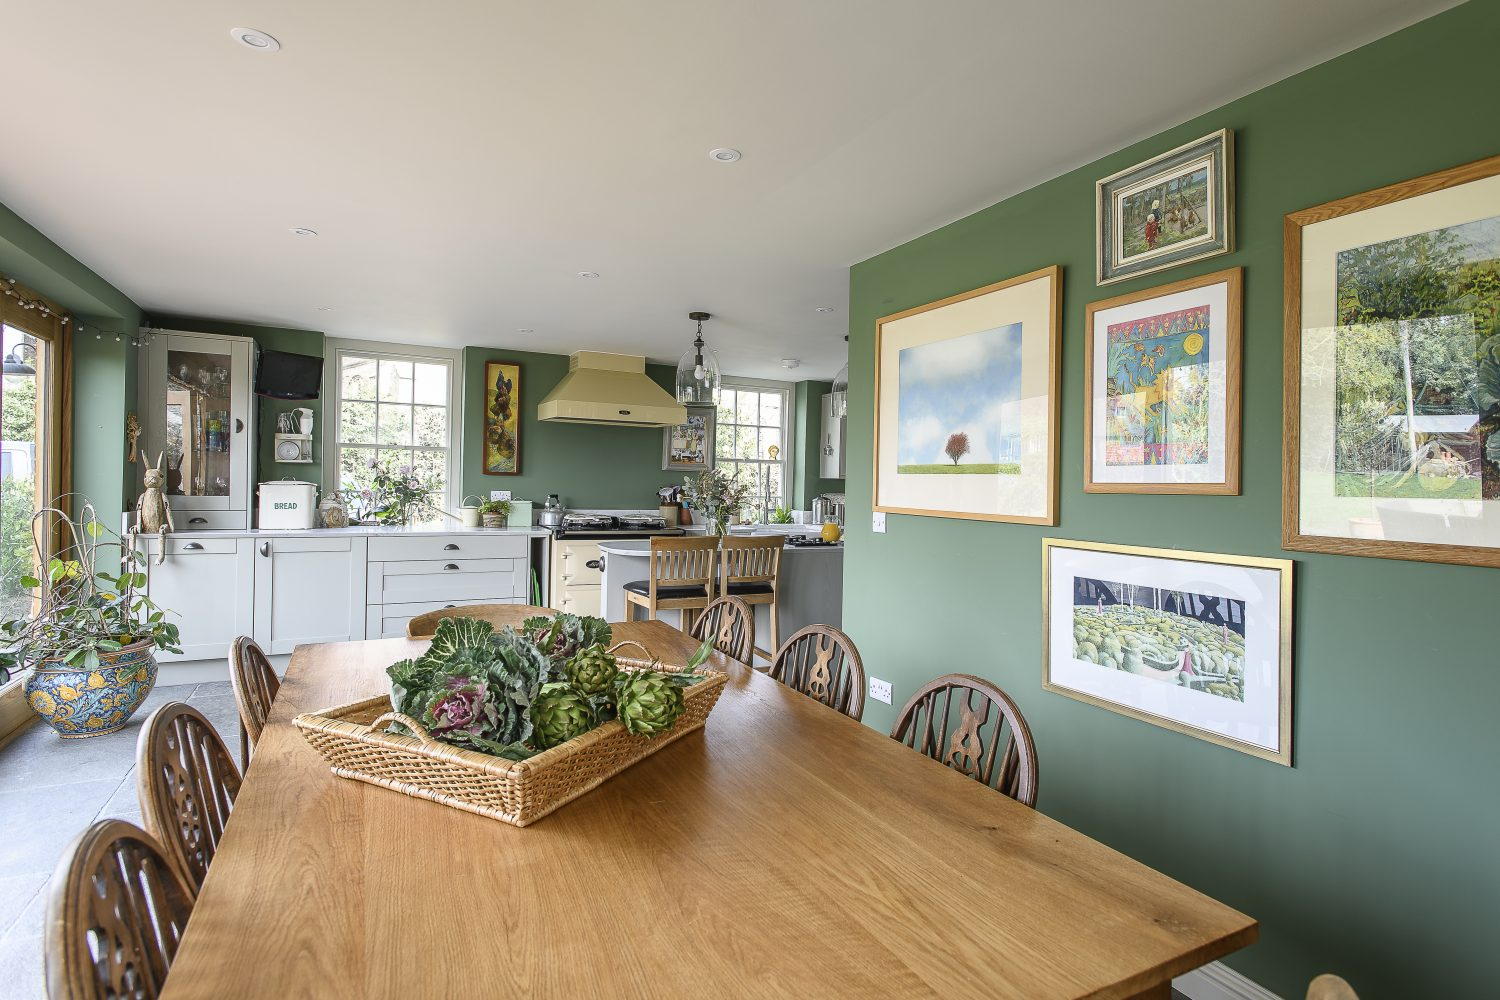 The new kitchen by Howdens spans across the back of the house and opens into the garden